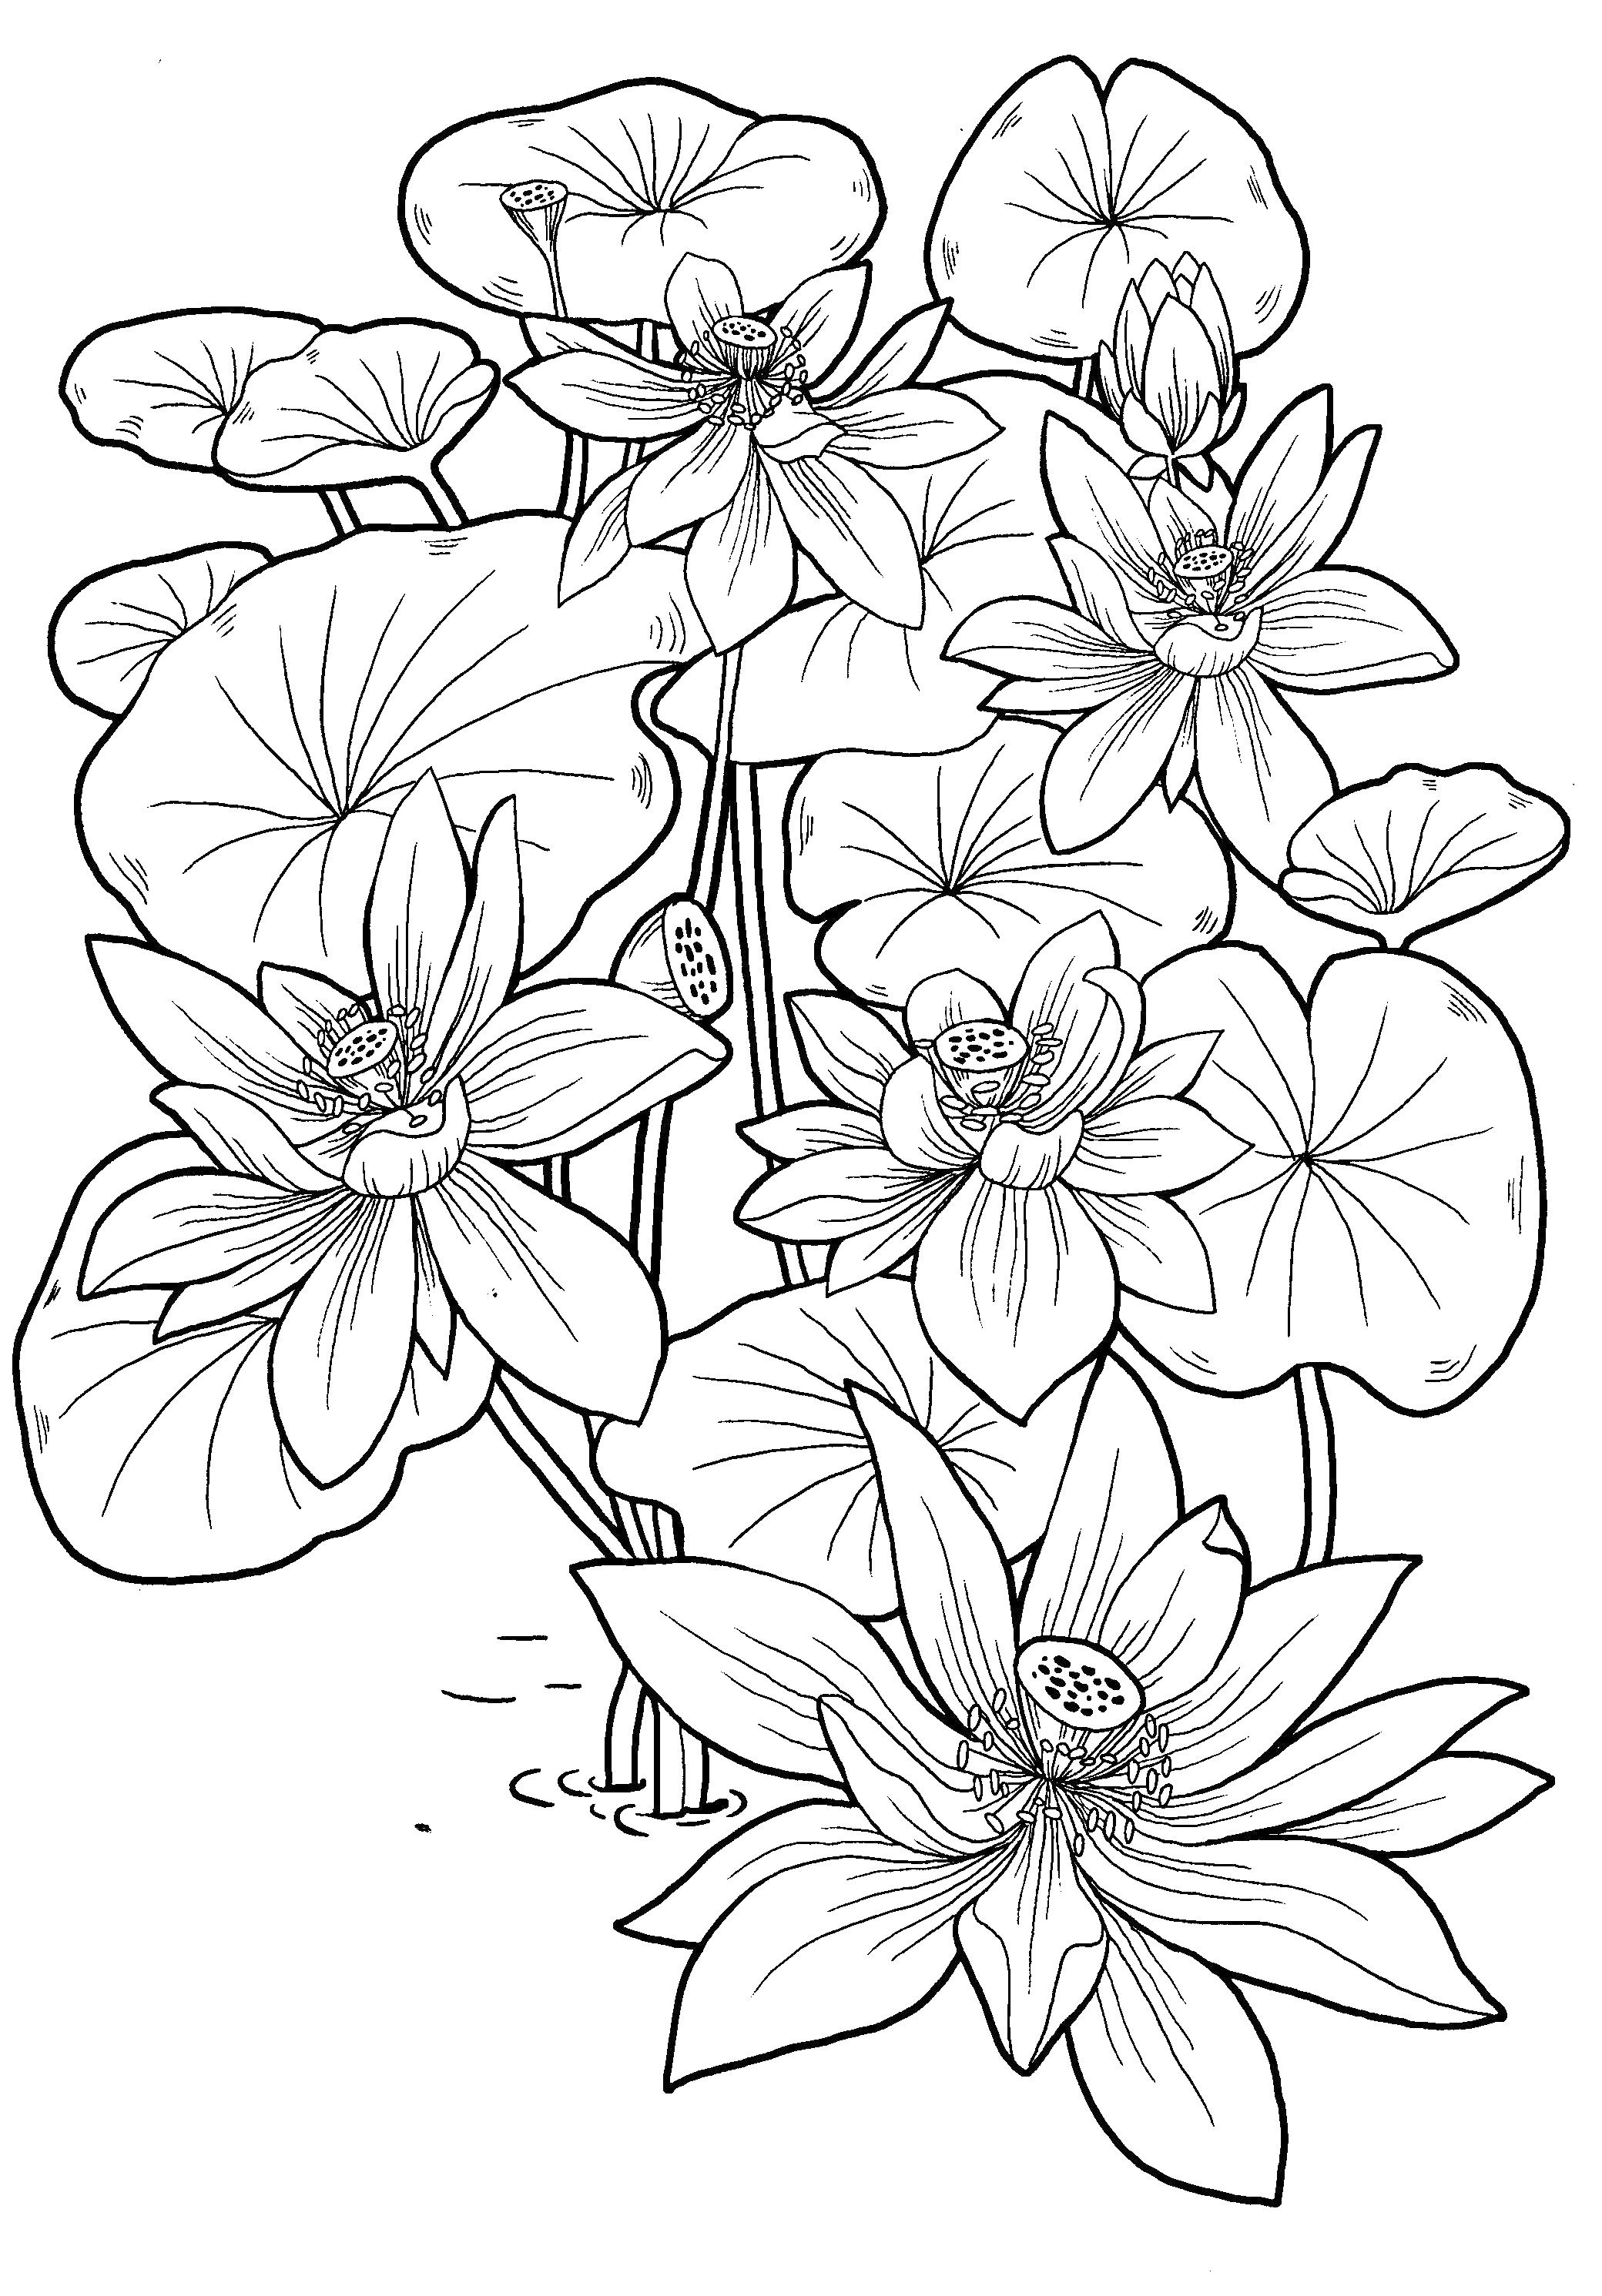 Coloring pages for 8 9 10year old girls to download and